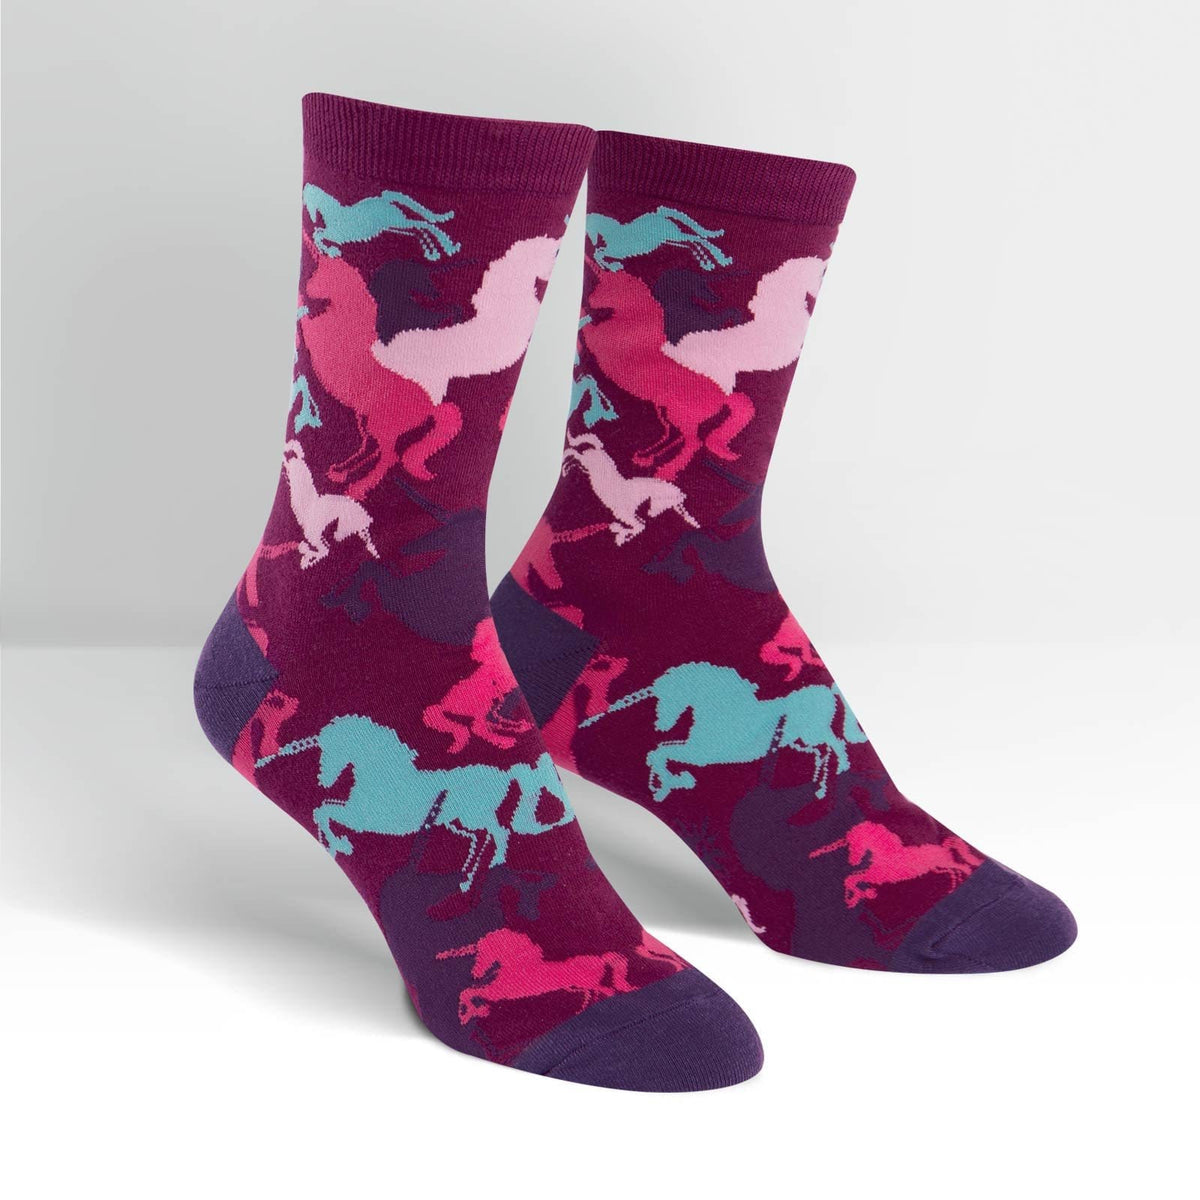 Mythical Unicorn Socks